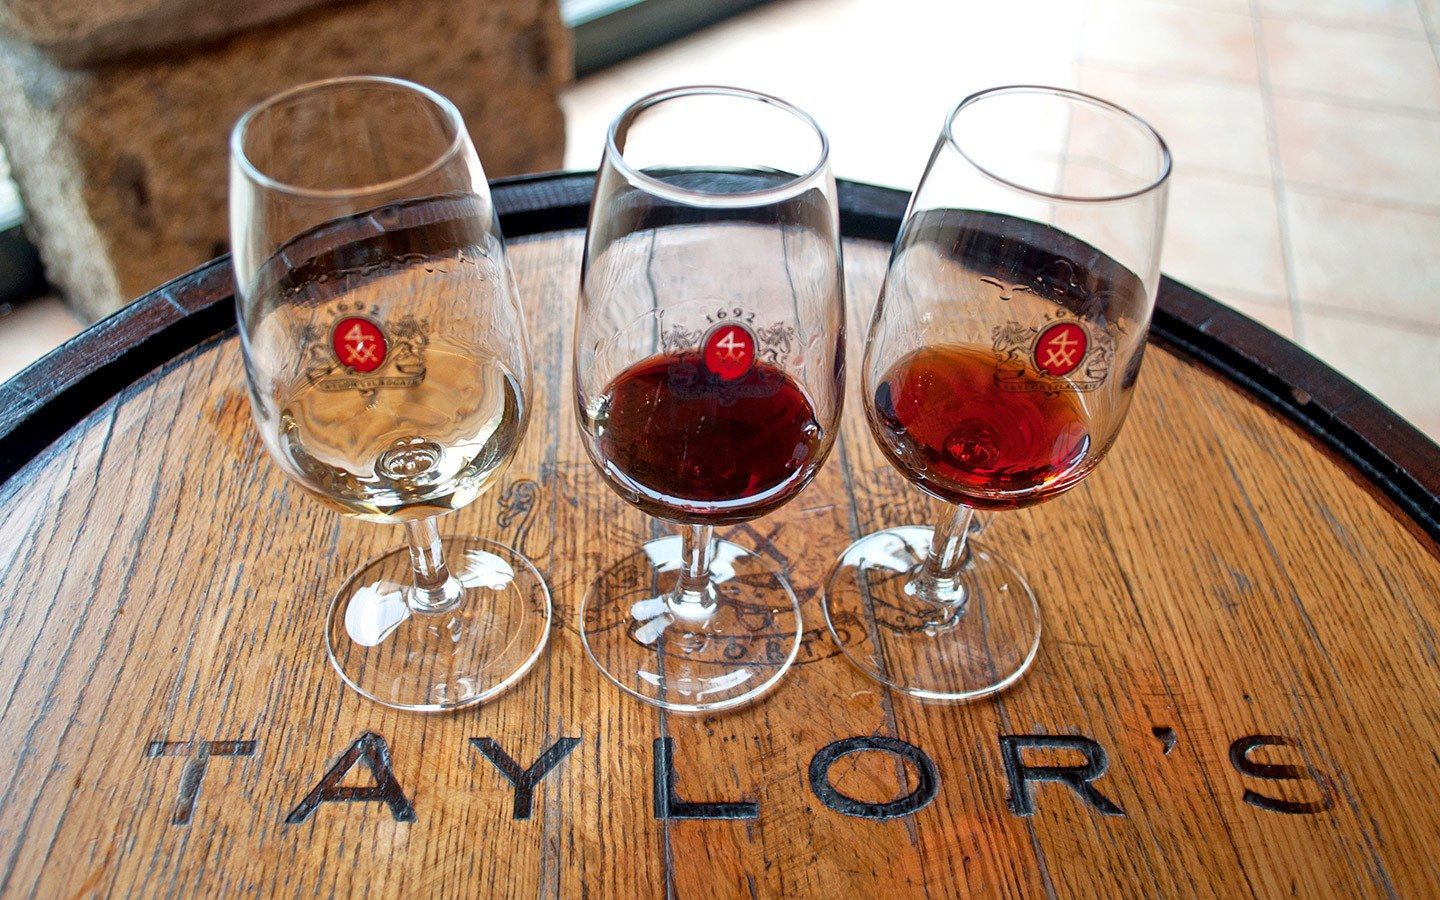 Port tasting at Taylor's in Vila Nova de Gaia, Porto